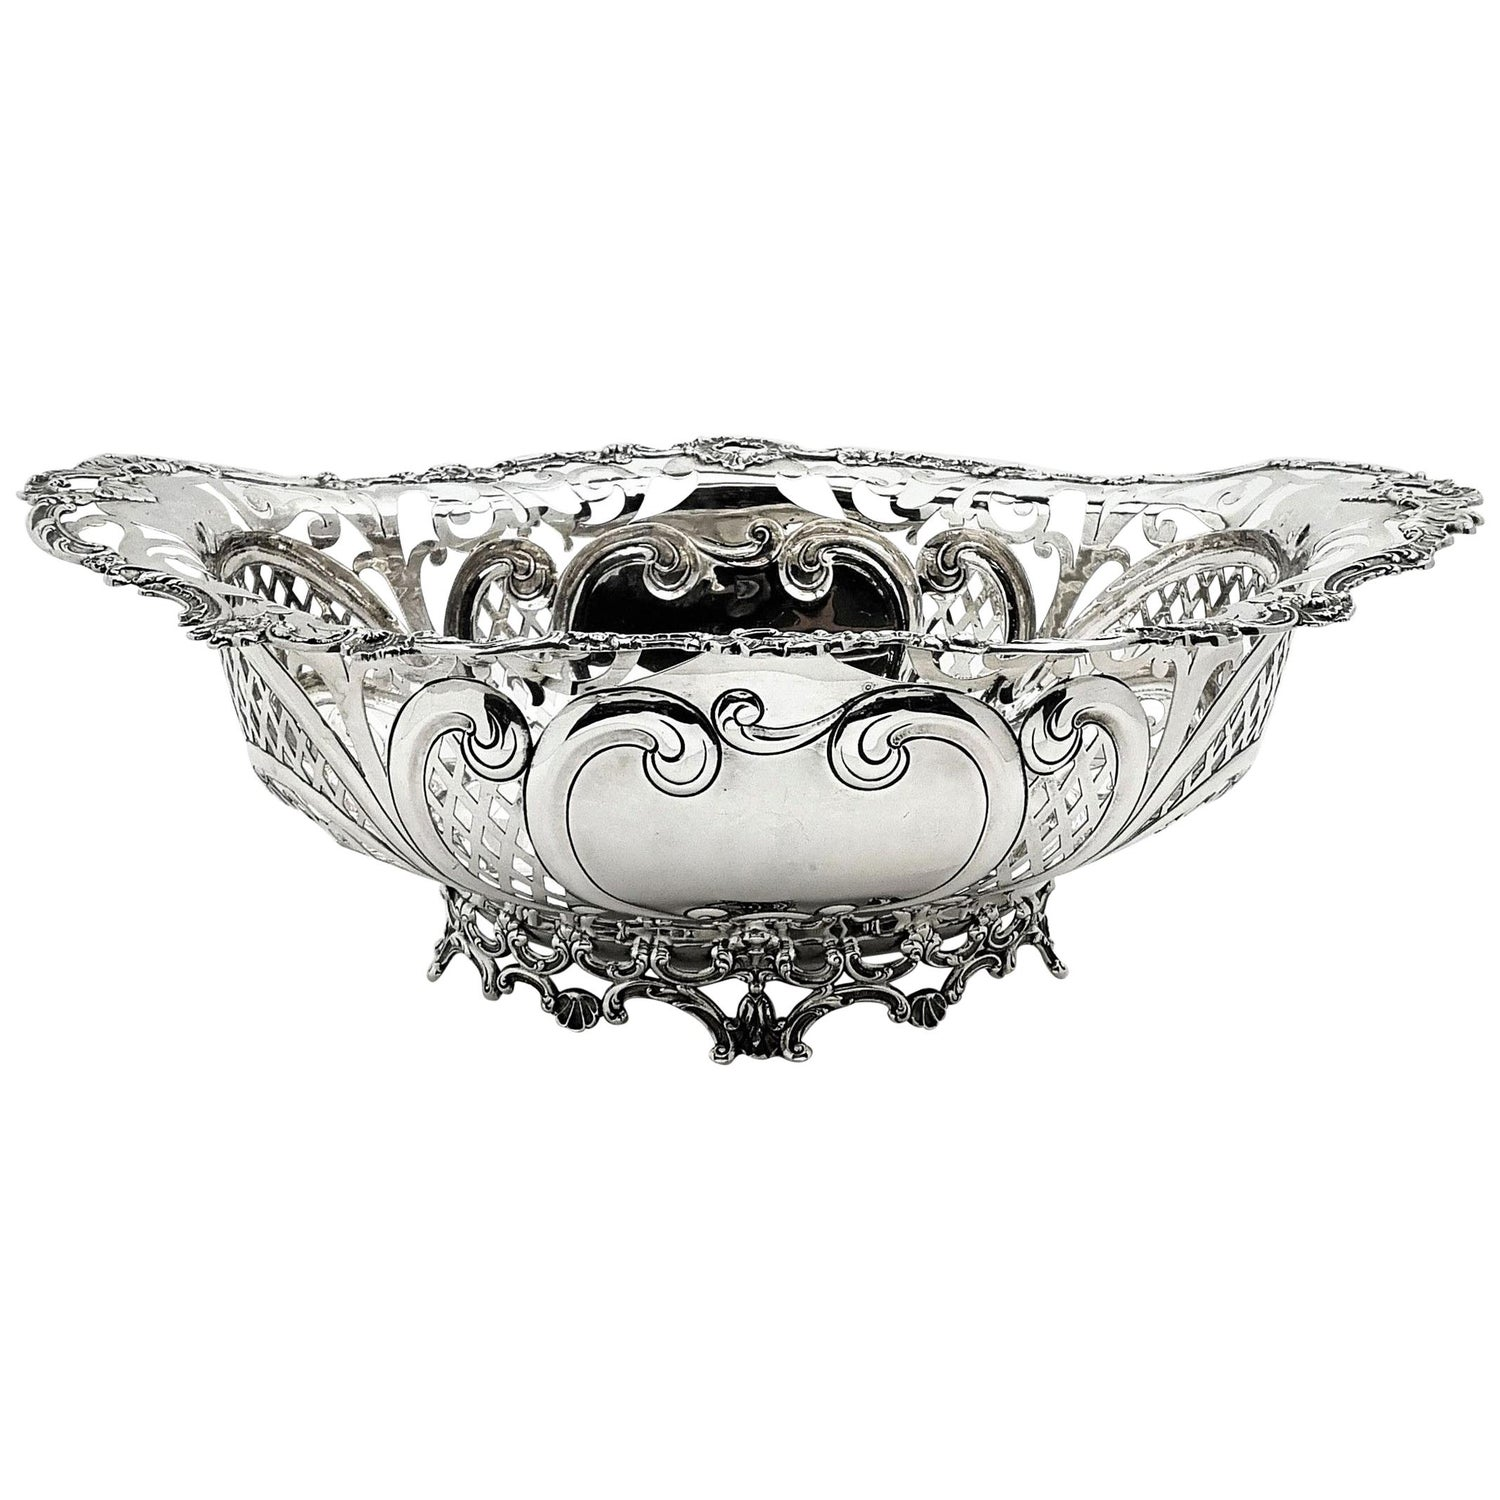 Large Antique Sterling Silver Gorham Bowl or Basket, USA, circa 1910